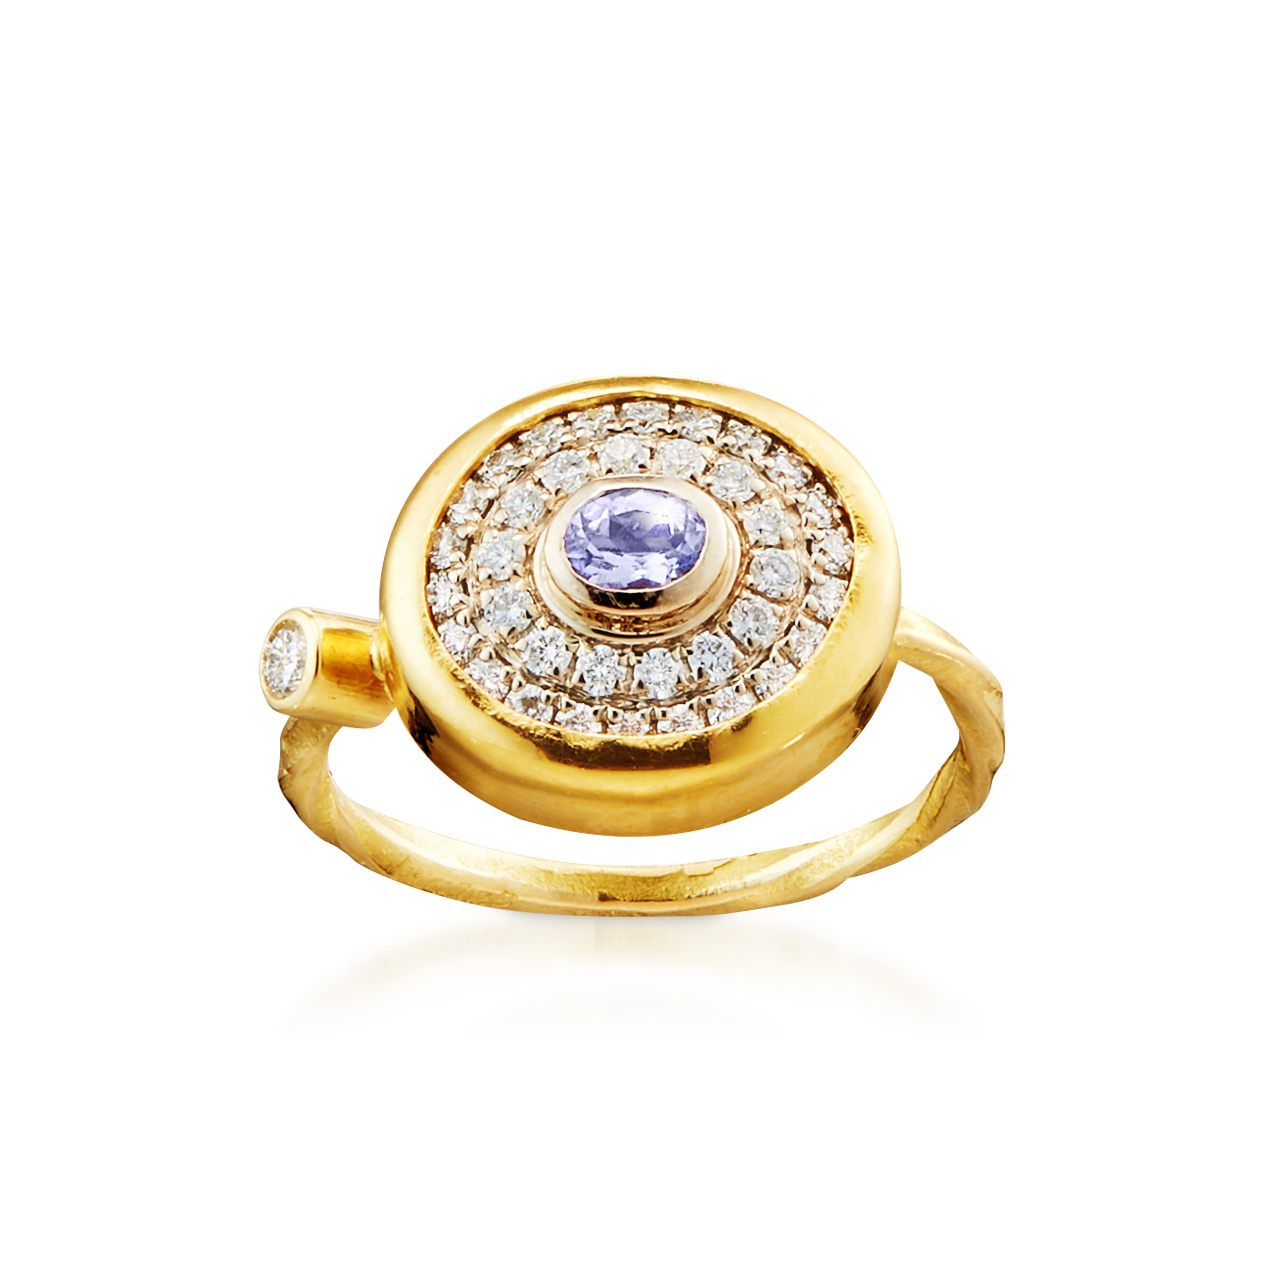 Bergsoe-diamond-ring-